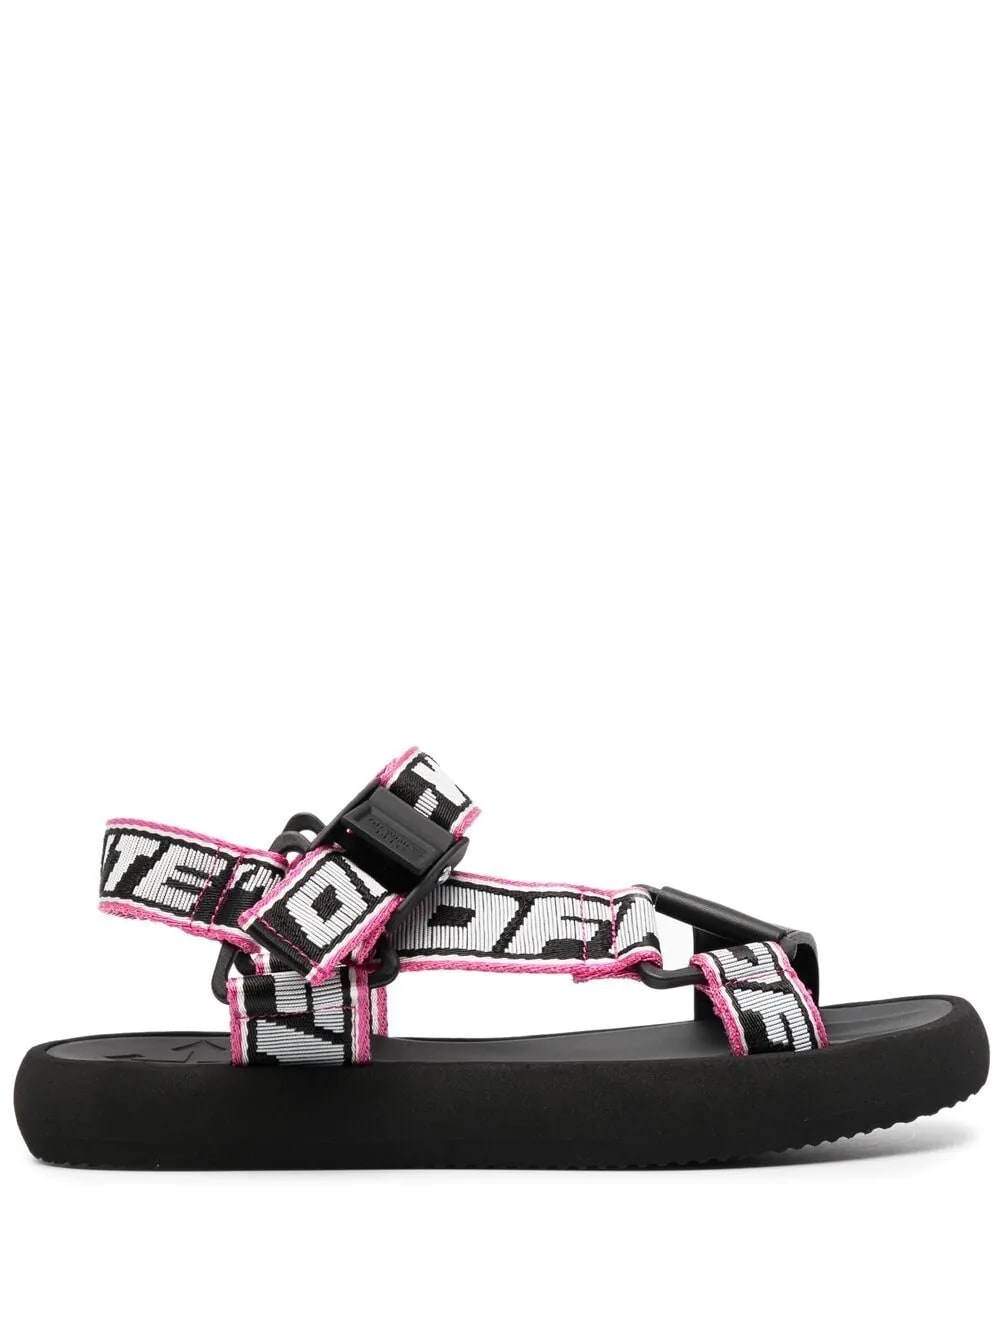 Off-White Woman Rubber Sandal With Black And Pink Logoed Nylon Tapes